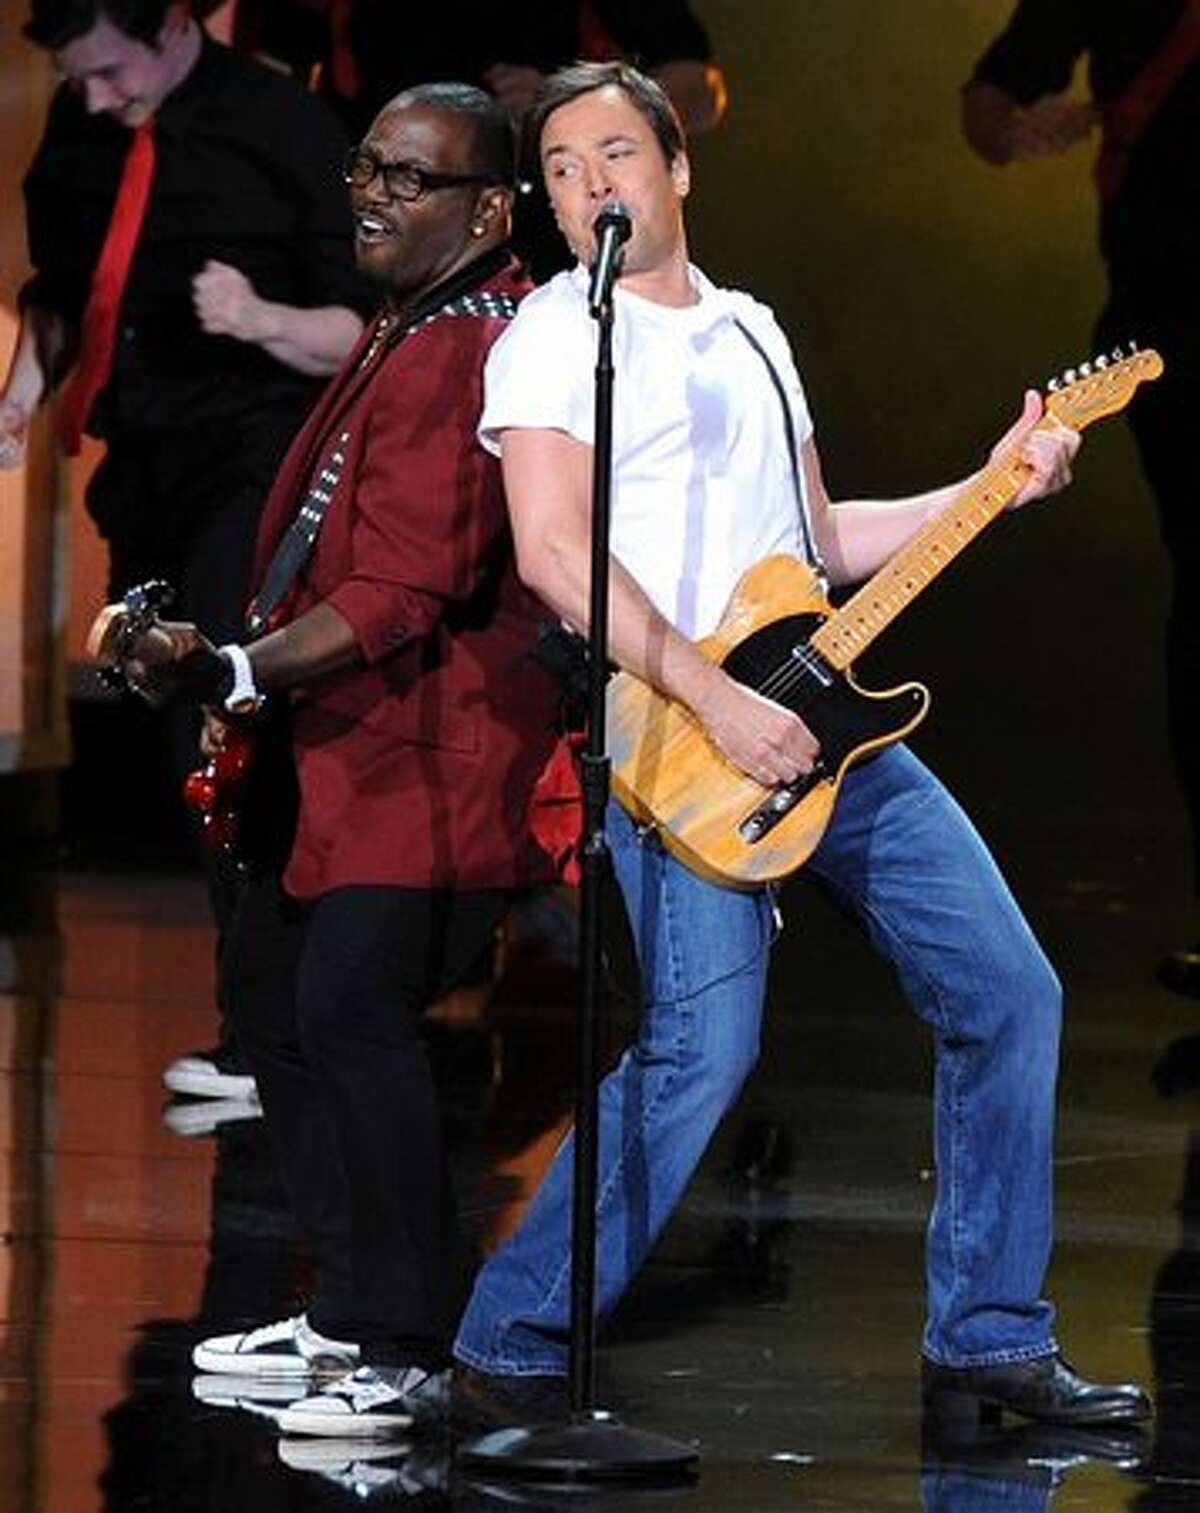 Musician Randy Jackson (L) and host Jimmy Fallon perform onstage.